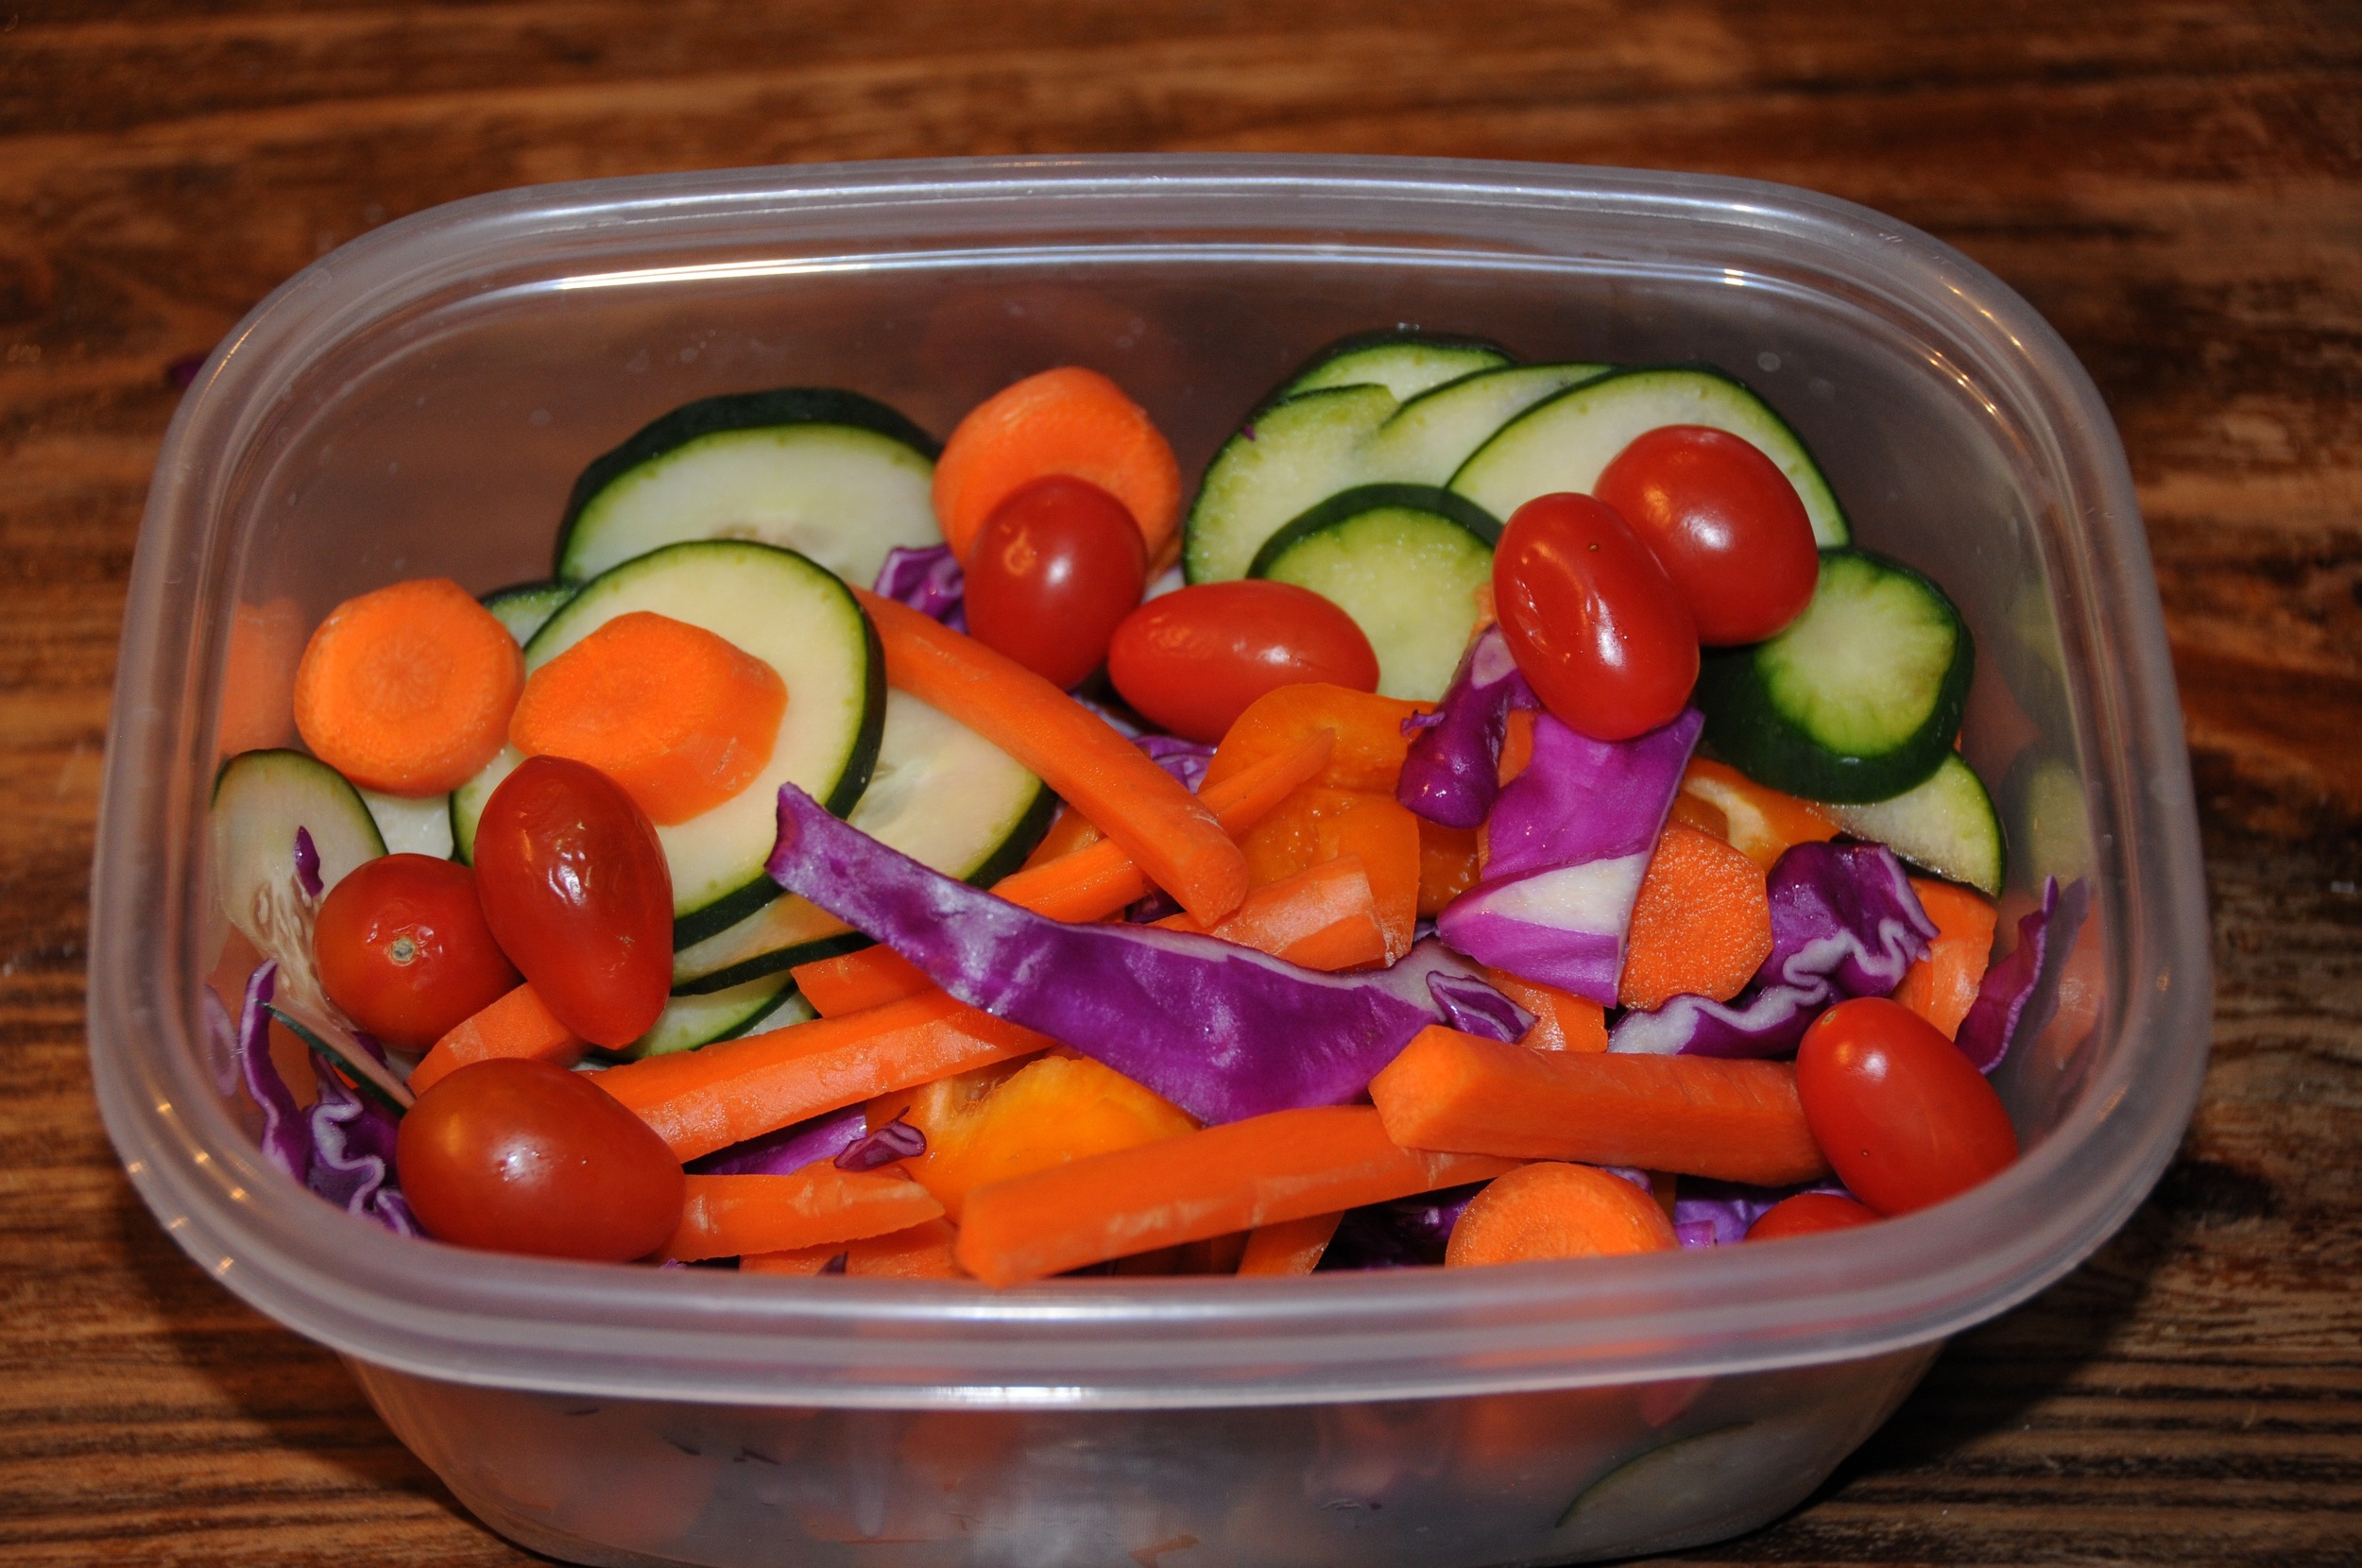 Throw your veggies into a tupperware and into the fridge